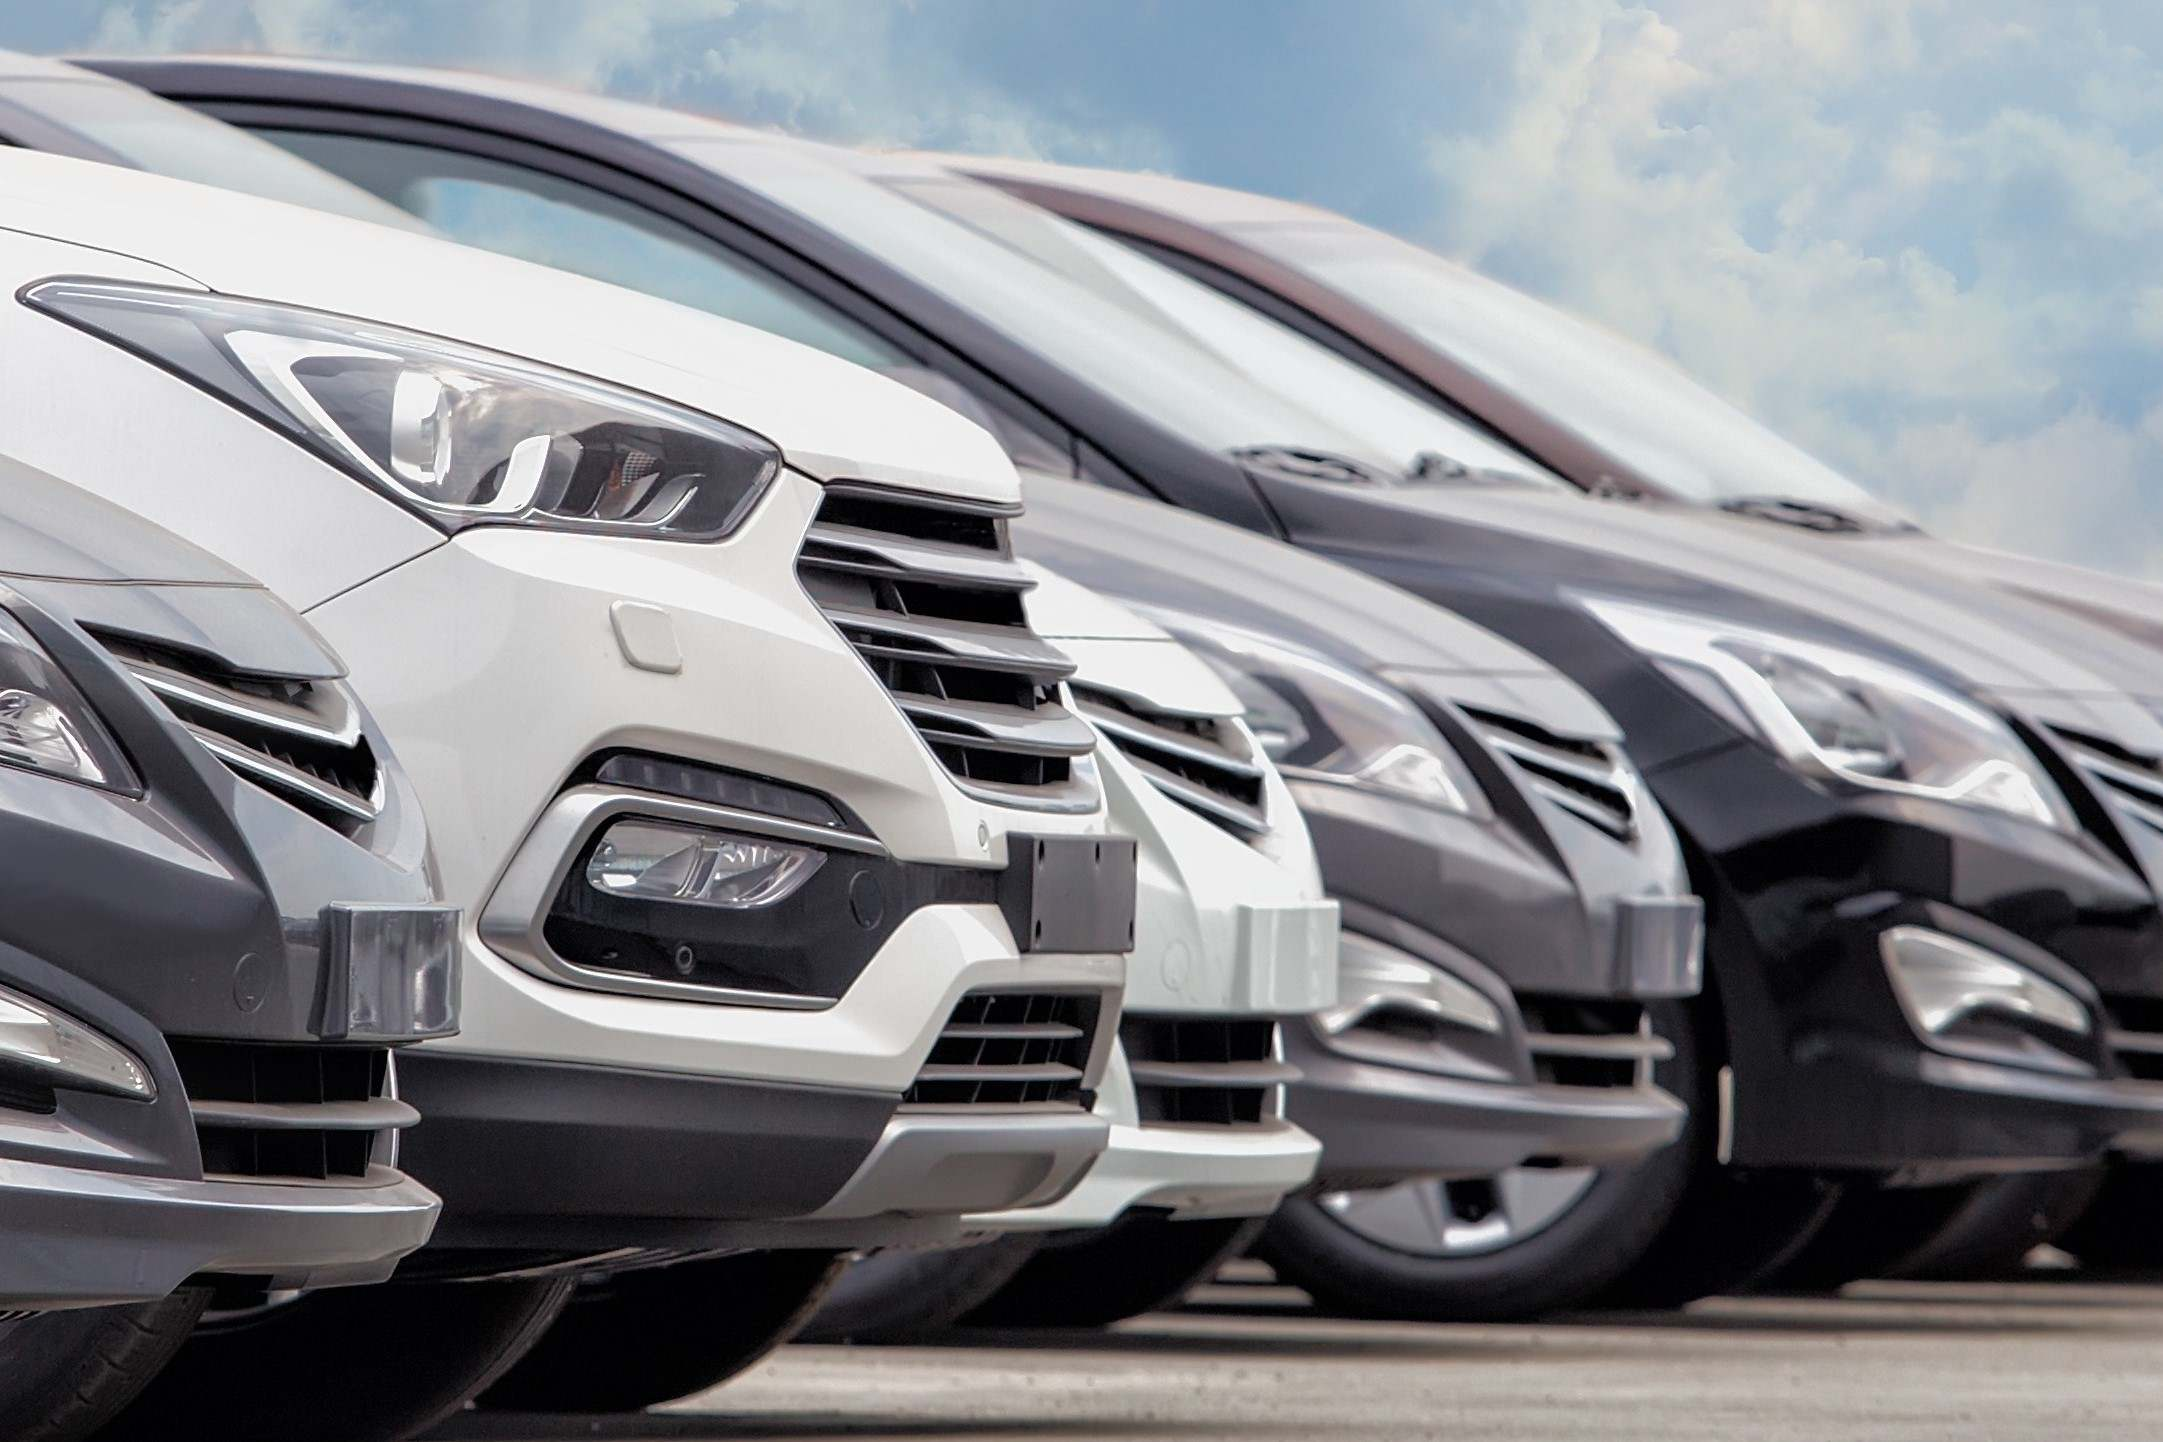 Changing cars every year: is it financially interesting?